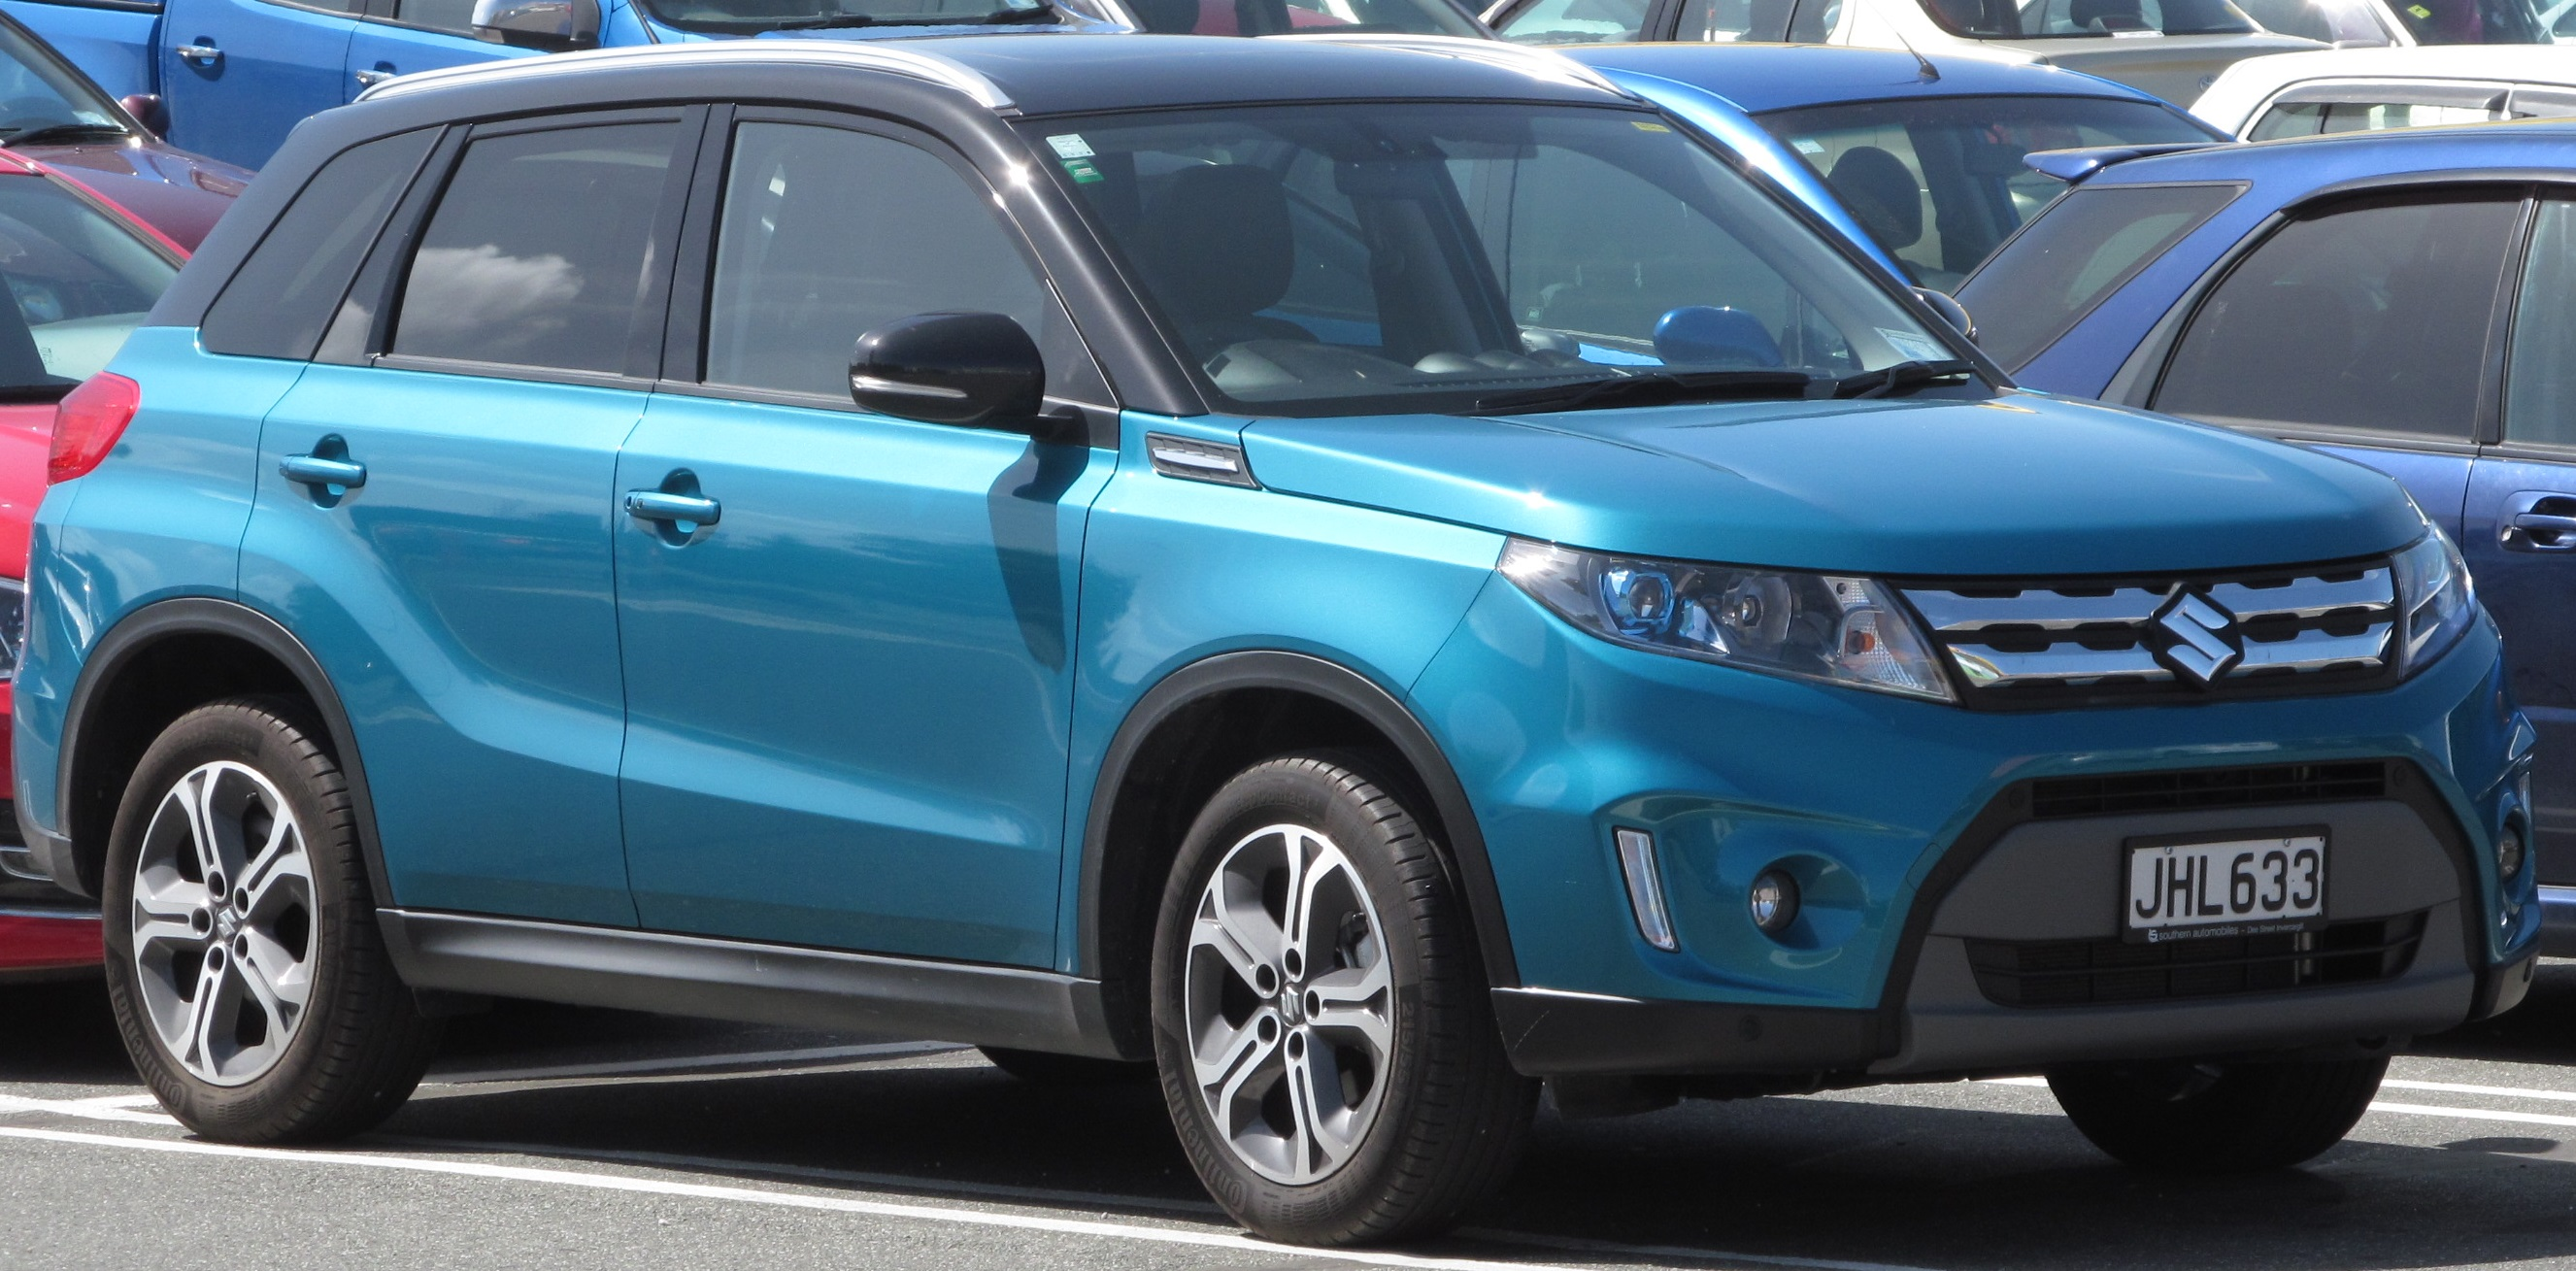 Maruti Suzuki Vitara Brezza On Road Price In Hyderabad